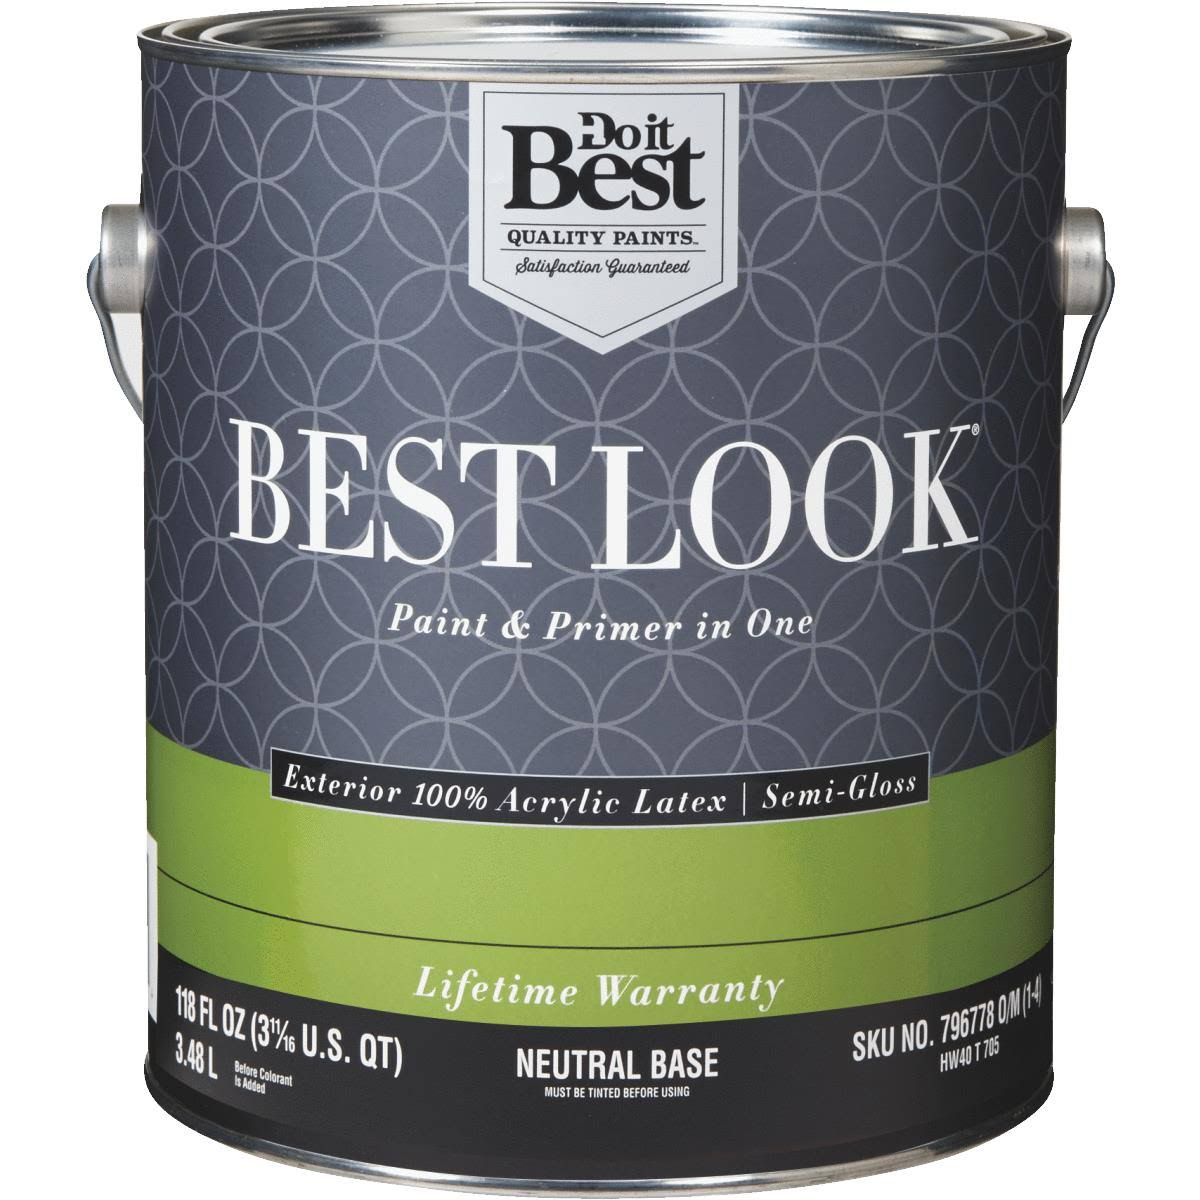 Best Look 100% Acrylic Latex Paint & Primer in One Semi-Gloss Exterior House Paint